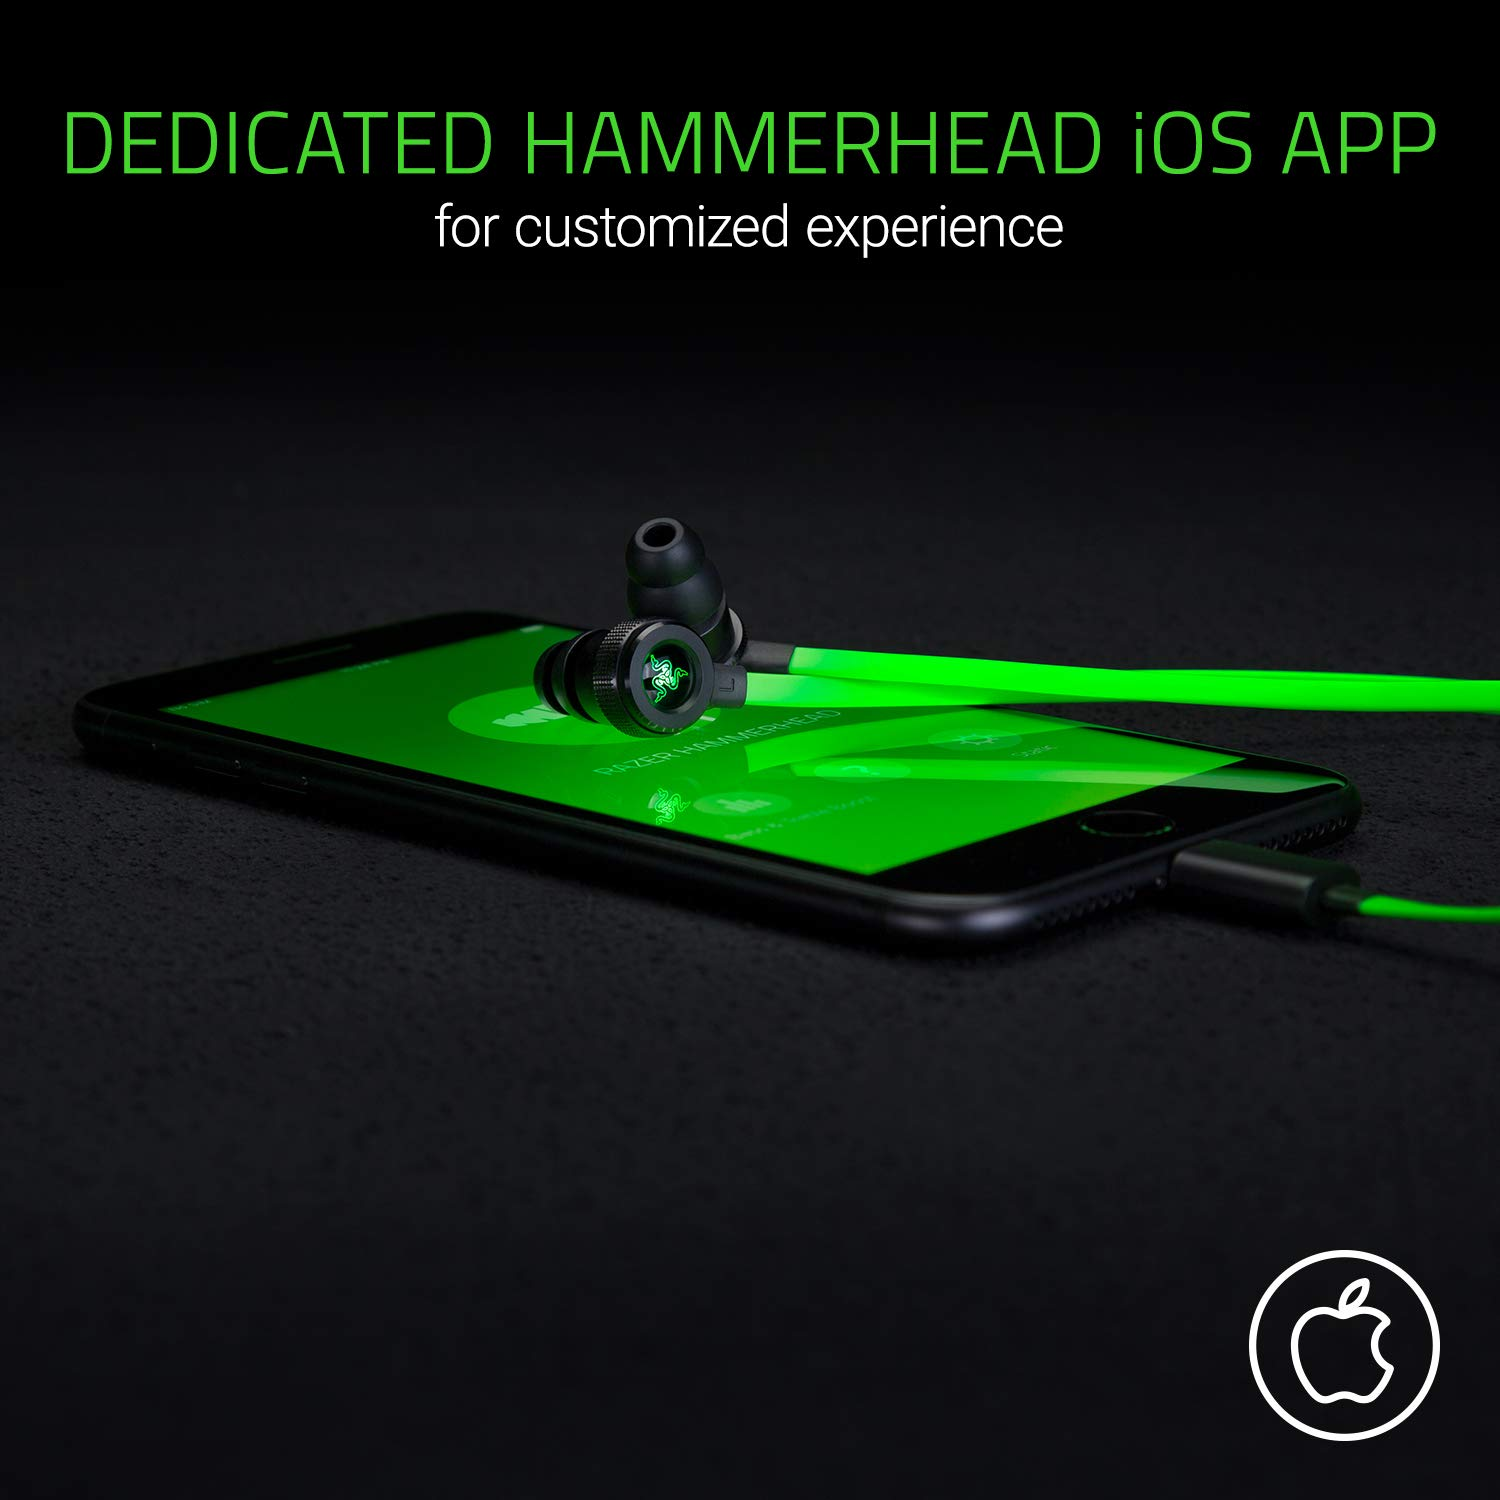 Razer Hammerhead For Ios 10 Mm Dynamic Drivers Computer Geek Circuit Board Green Magnetic Picture Frame Durable Aluminum Chassis And Flat Style Cable In Line Controls Electronics